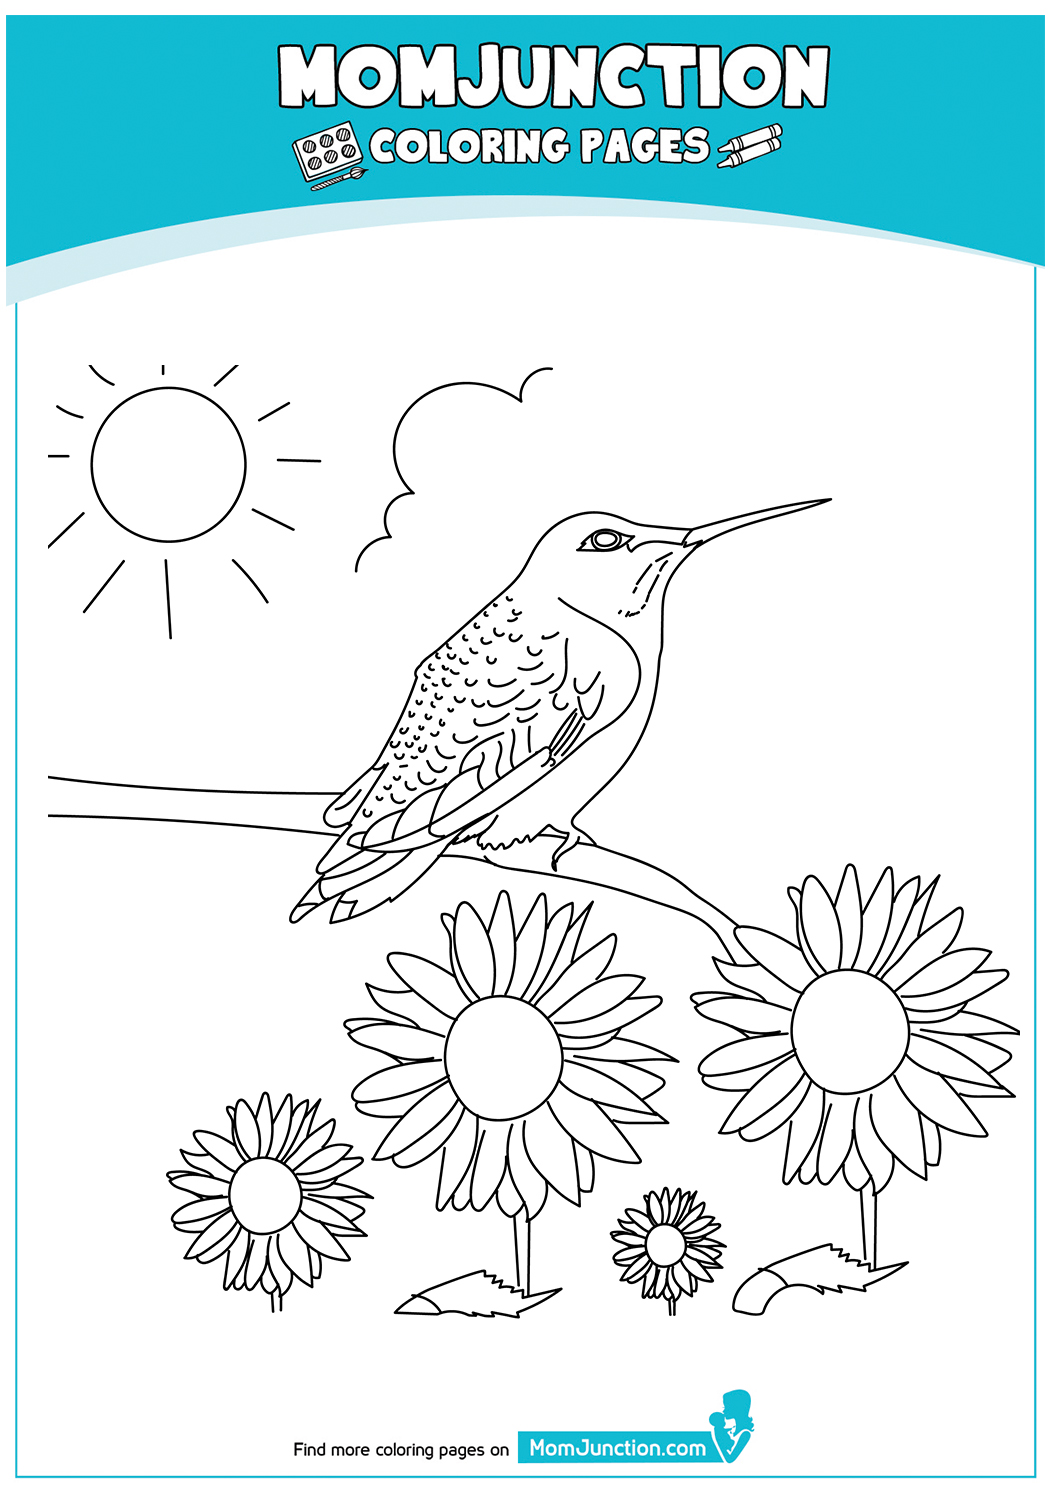 Hummingbird-And-Sunflower-Coloring-Page-17